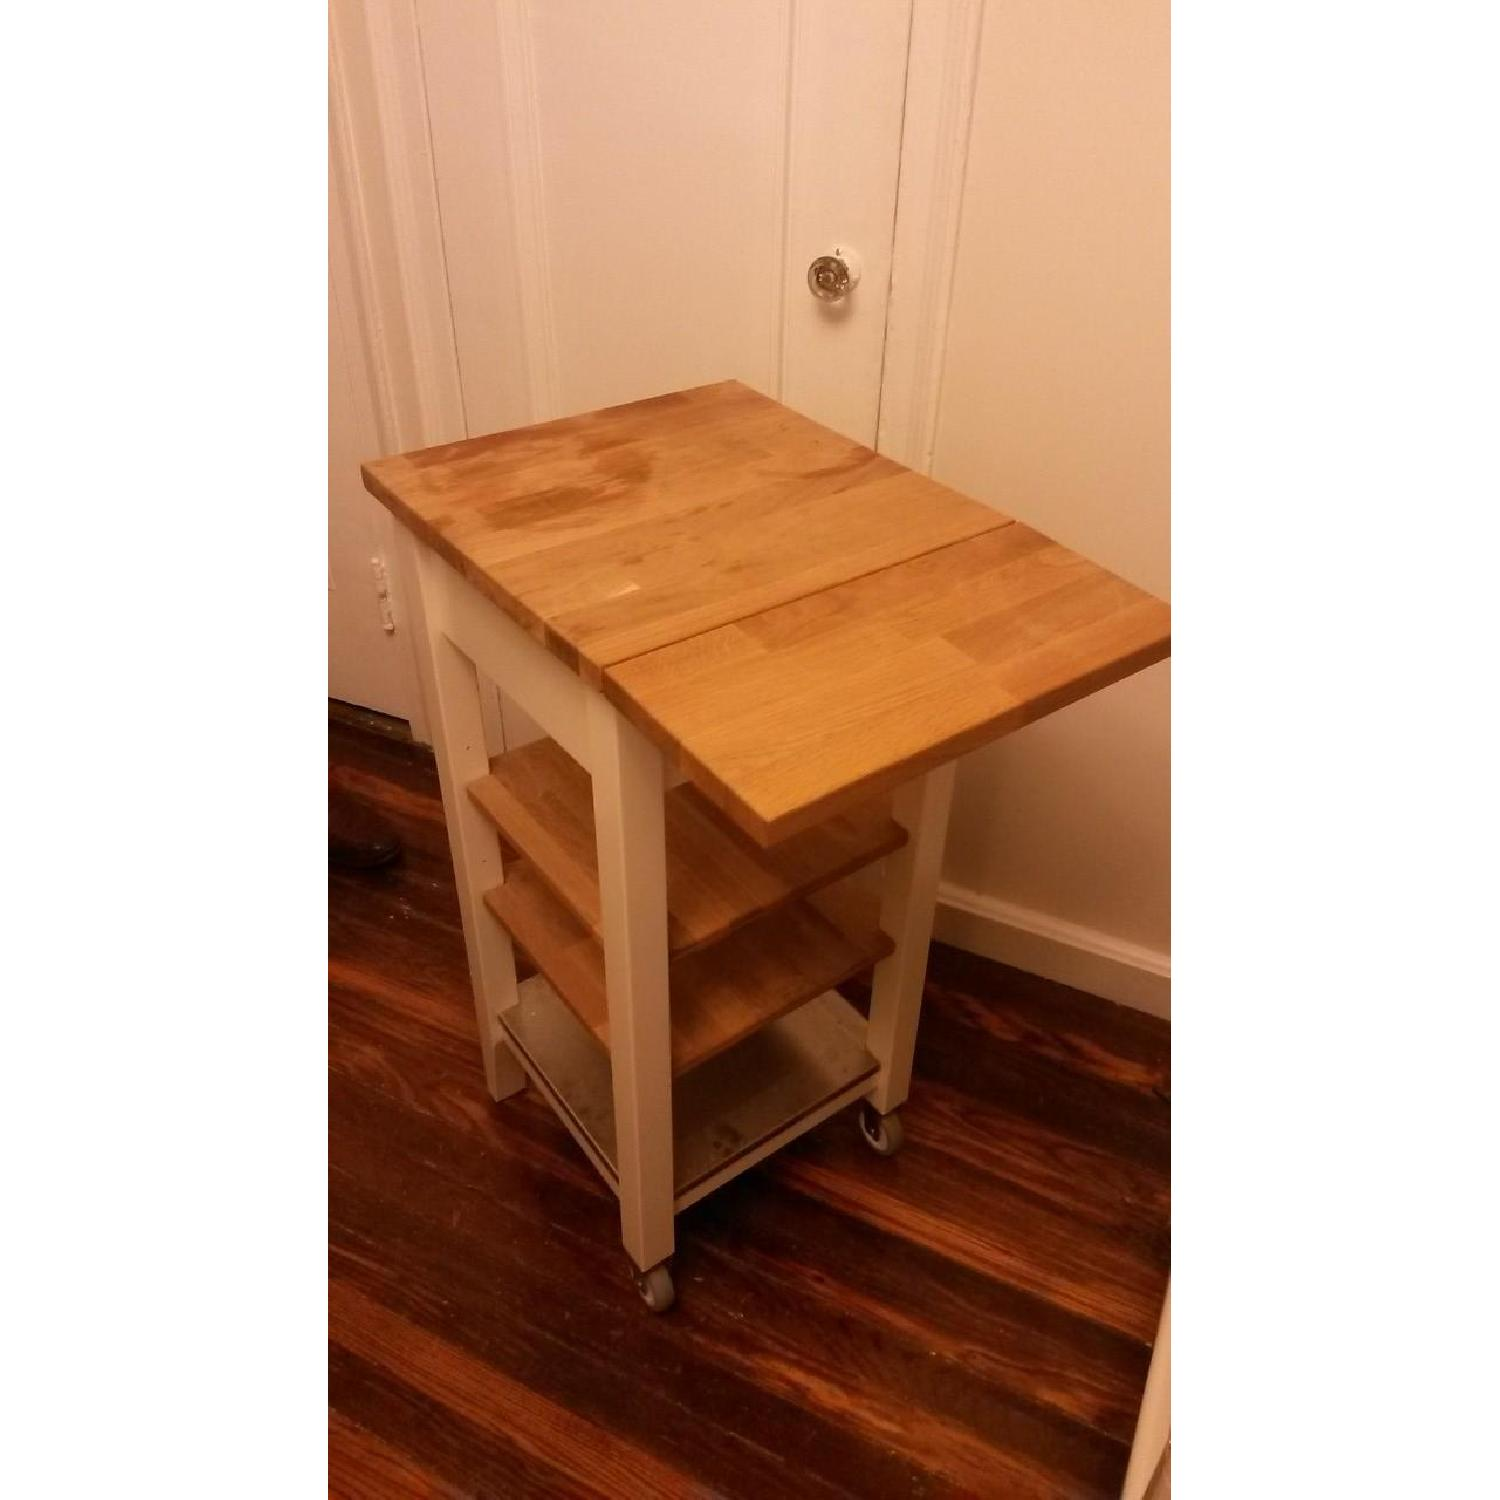 Ikea Cutting Board/Storage Table